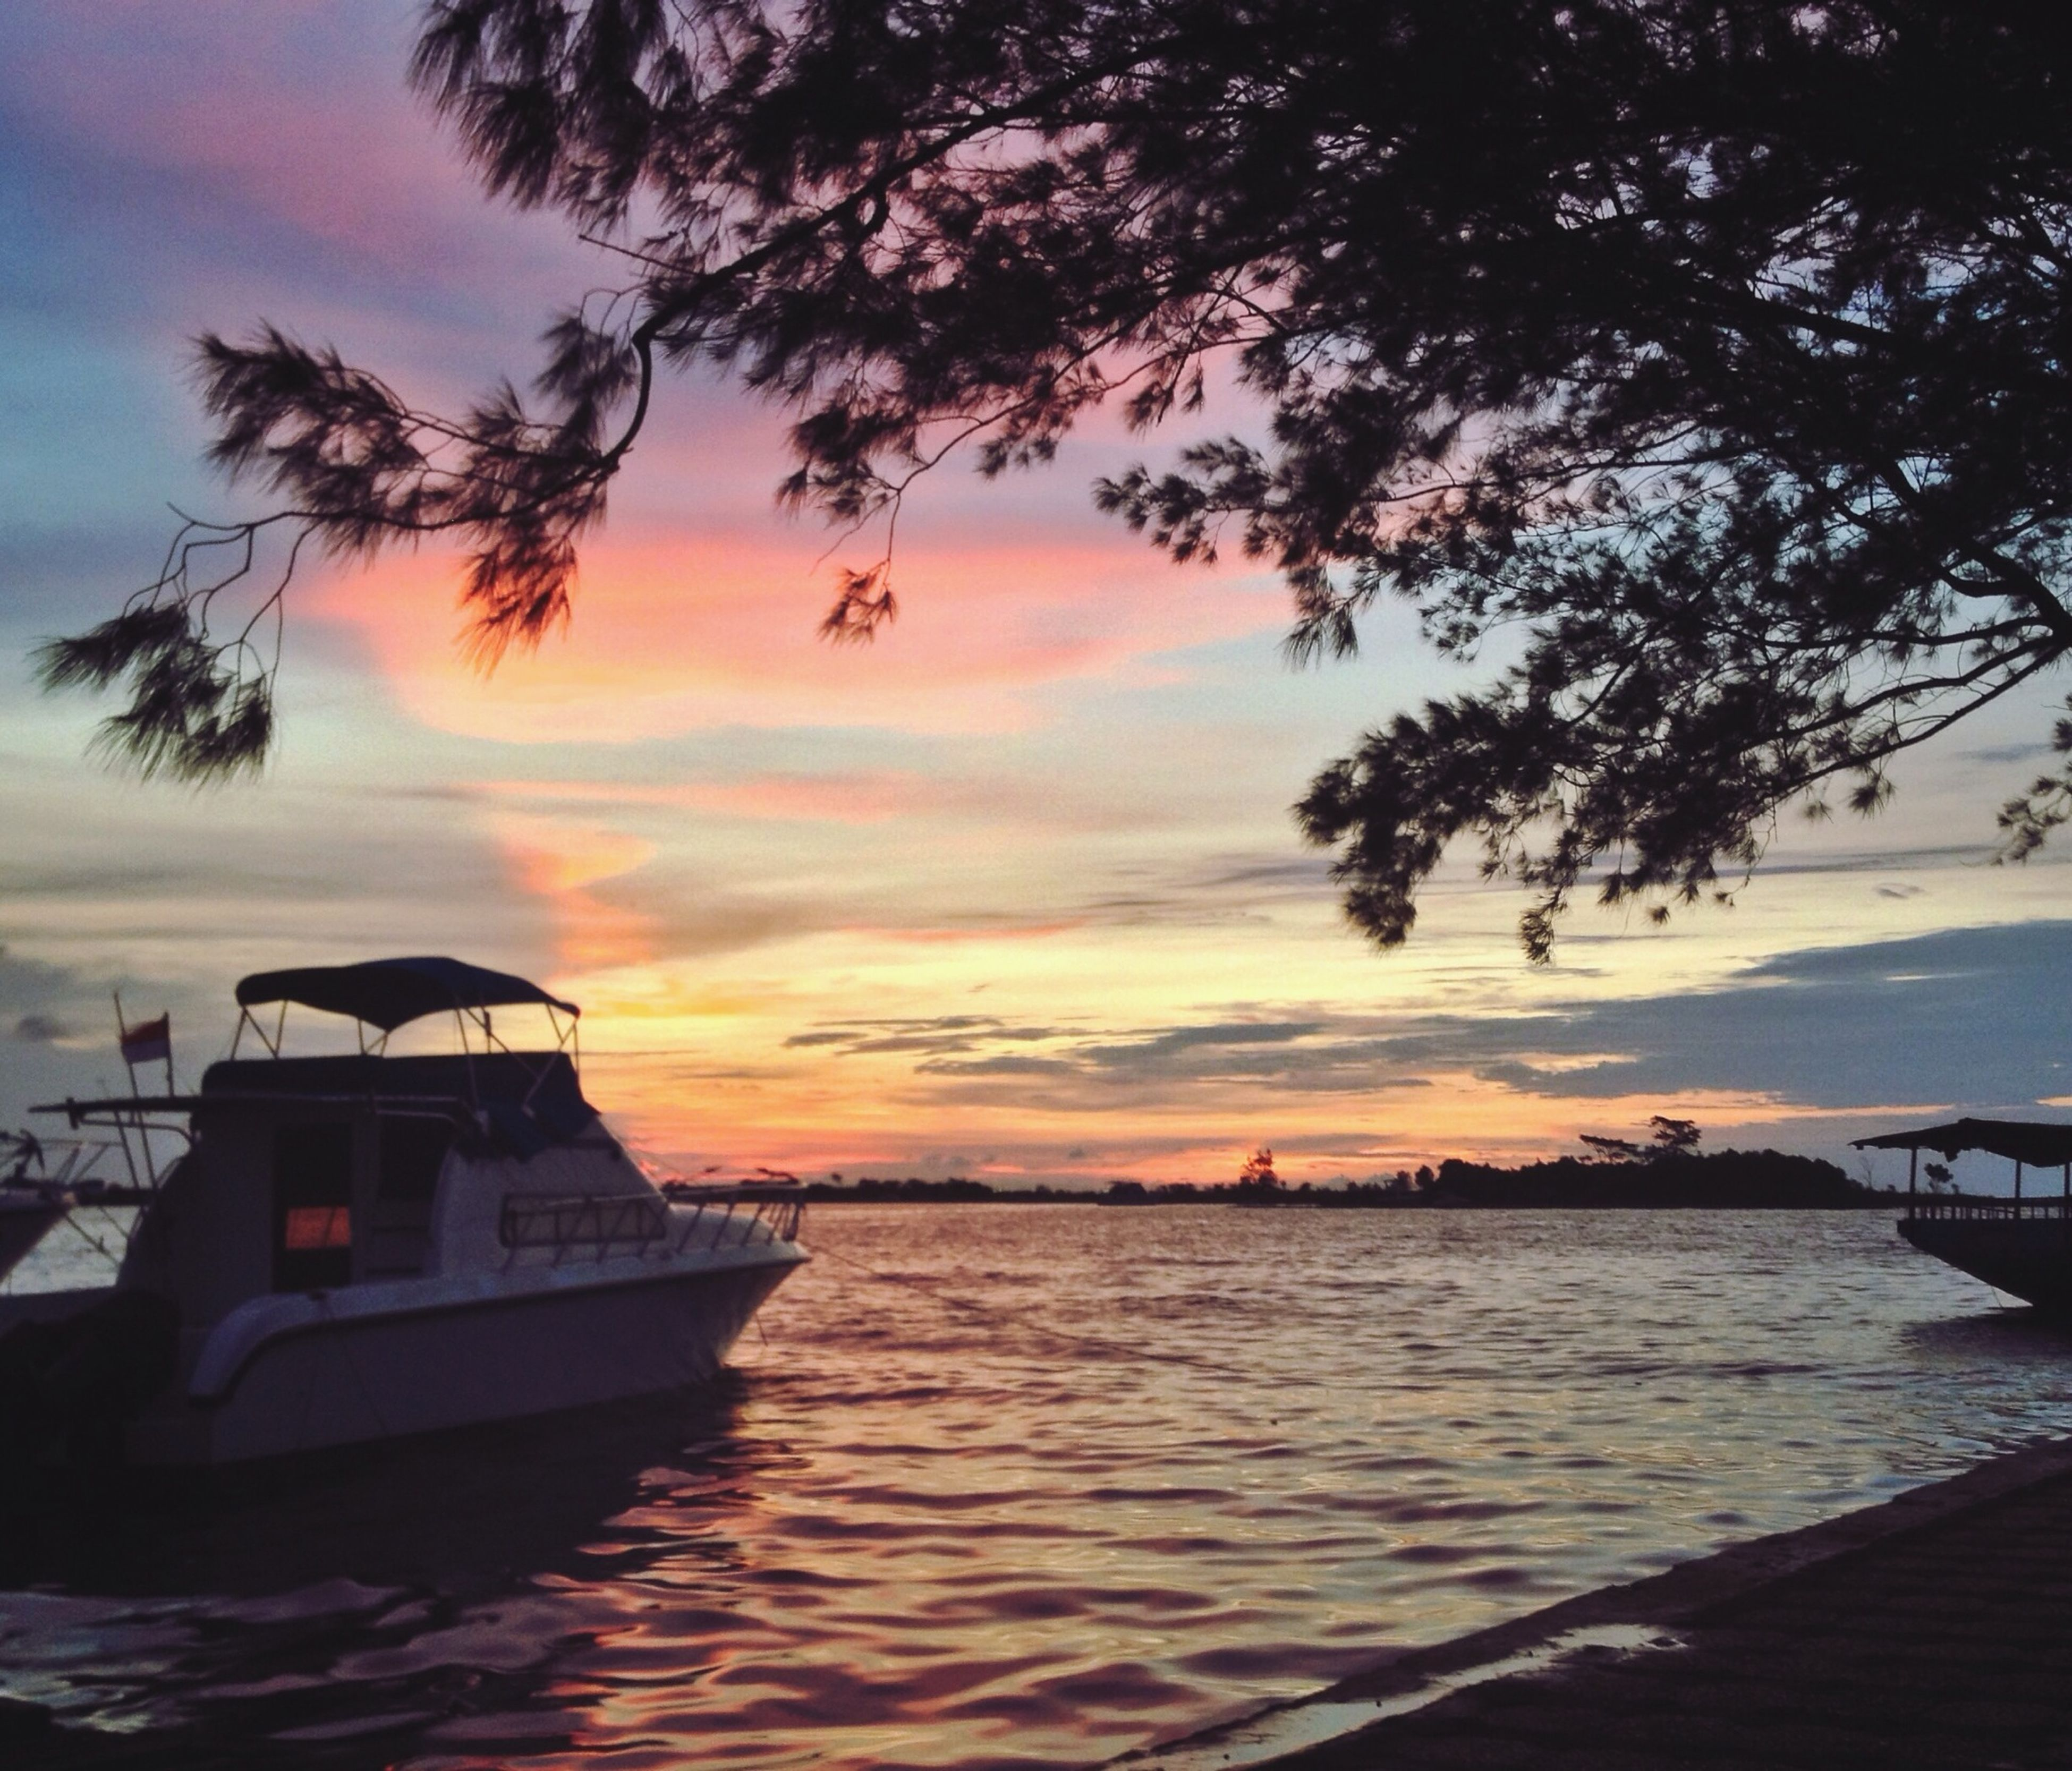 sunset, water, sky, sea, cloud - sky, scenics, tranquility, tranquil scene, waterfront, beauty in nature, tree, orange color, nature, nautical vessel, transportation, cloud, idyllic, boat, silhouette, horizon over water